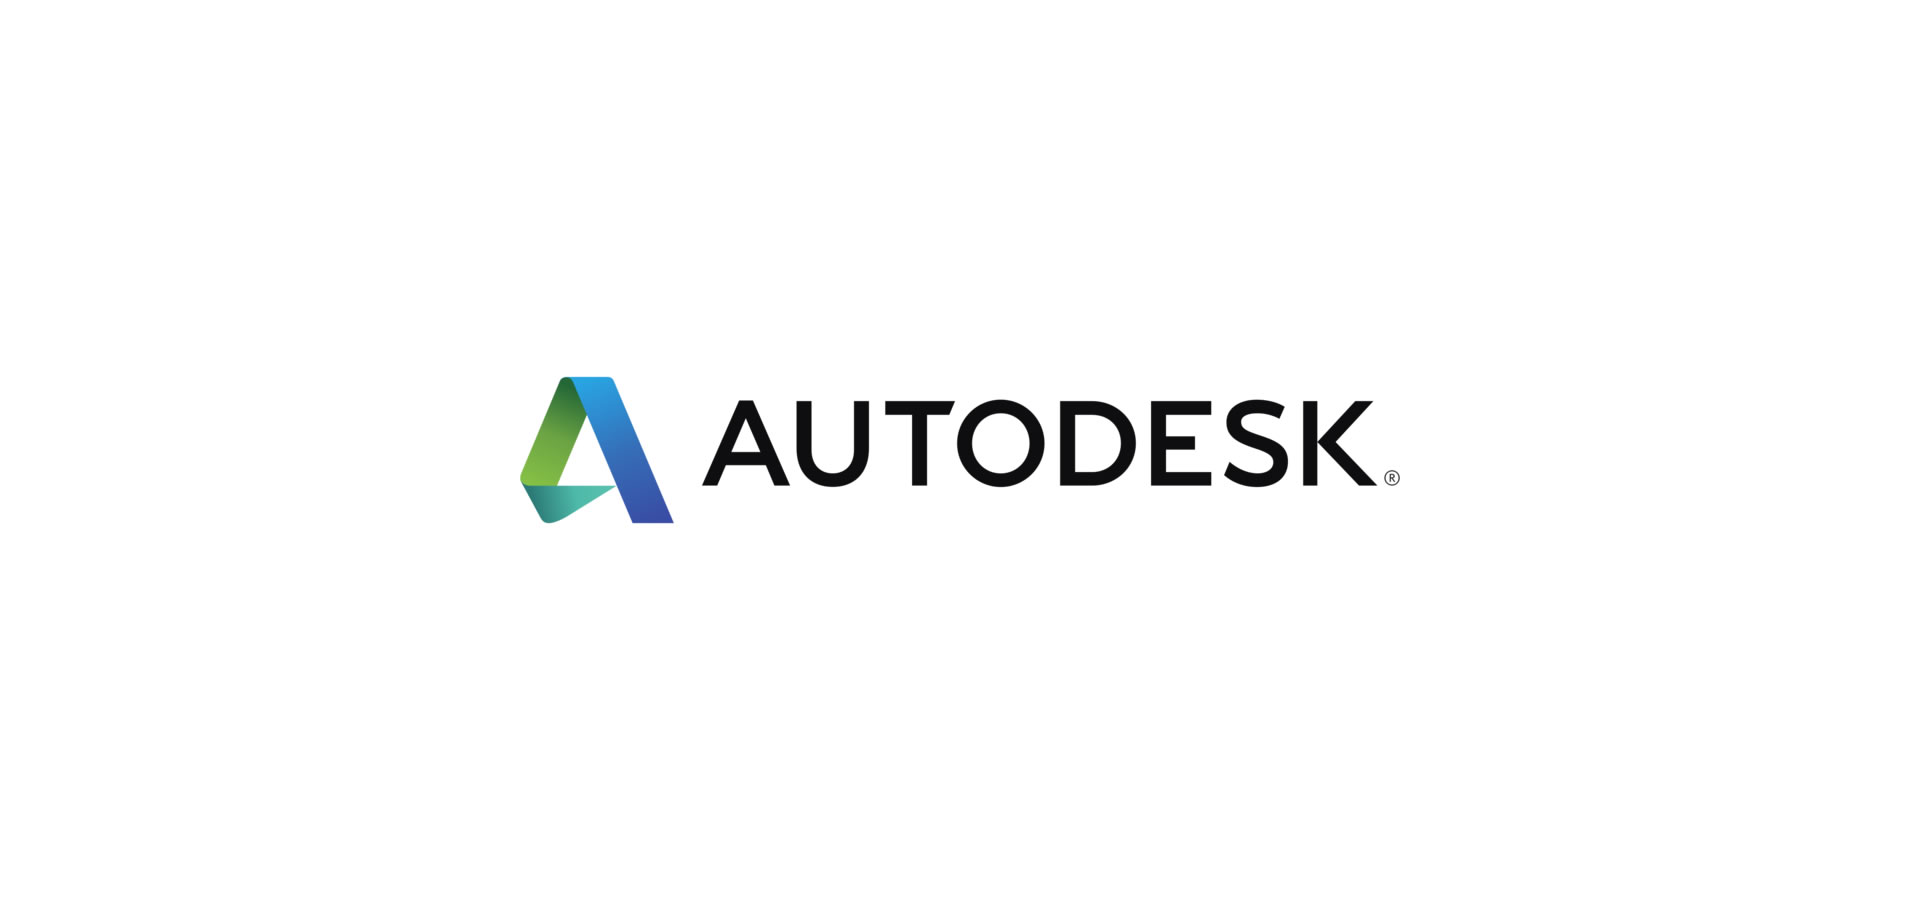 StarVR and Autodesk Bring Break-Through VR to Automotive Design with VRED Optimized for StarVR's Next-Generation Head Mounted Display